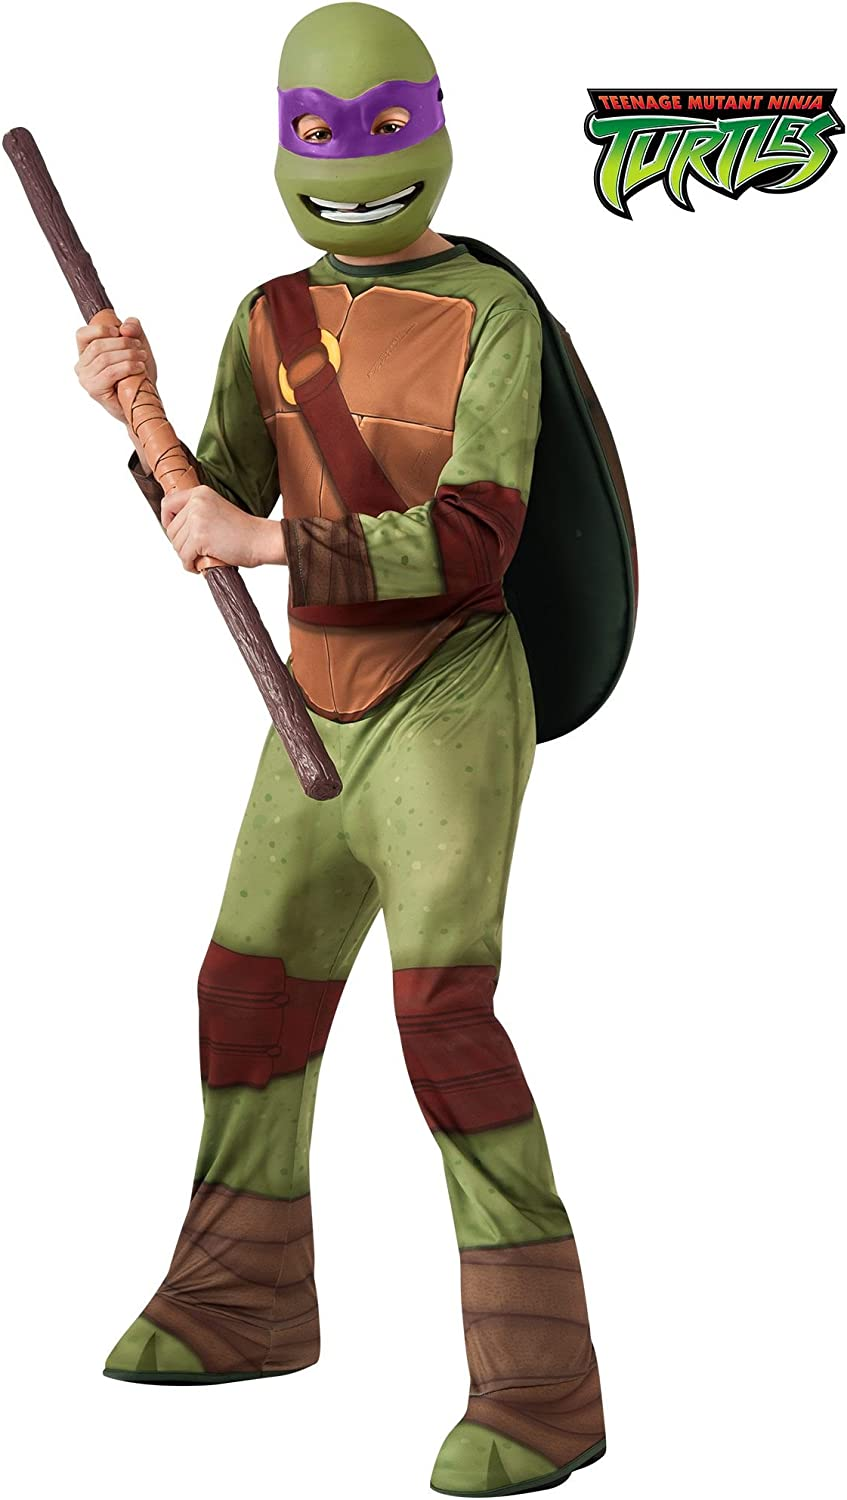 Teenage Mutant Ninja Turtles Donatello Costume, Medium